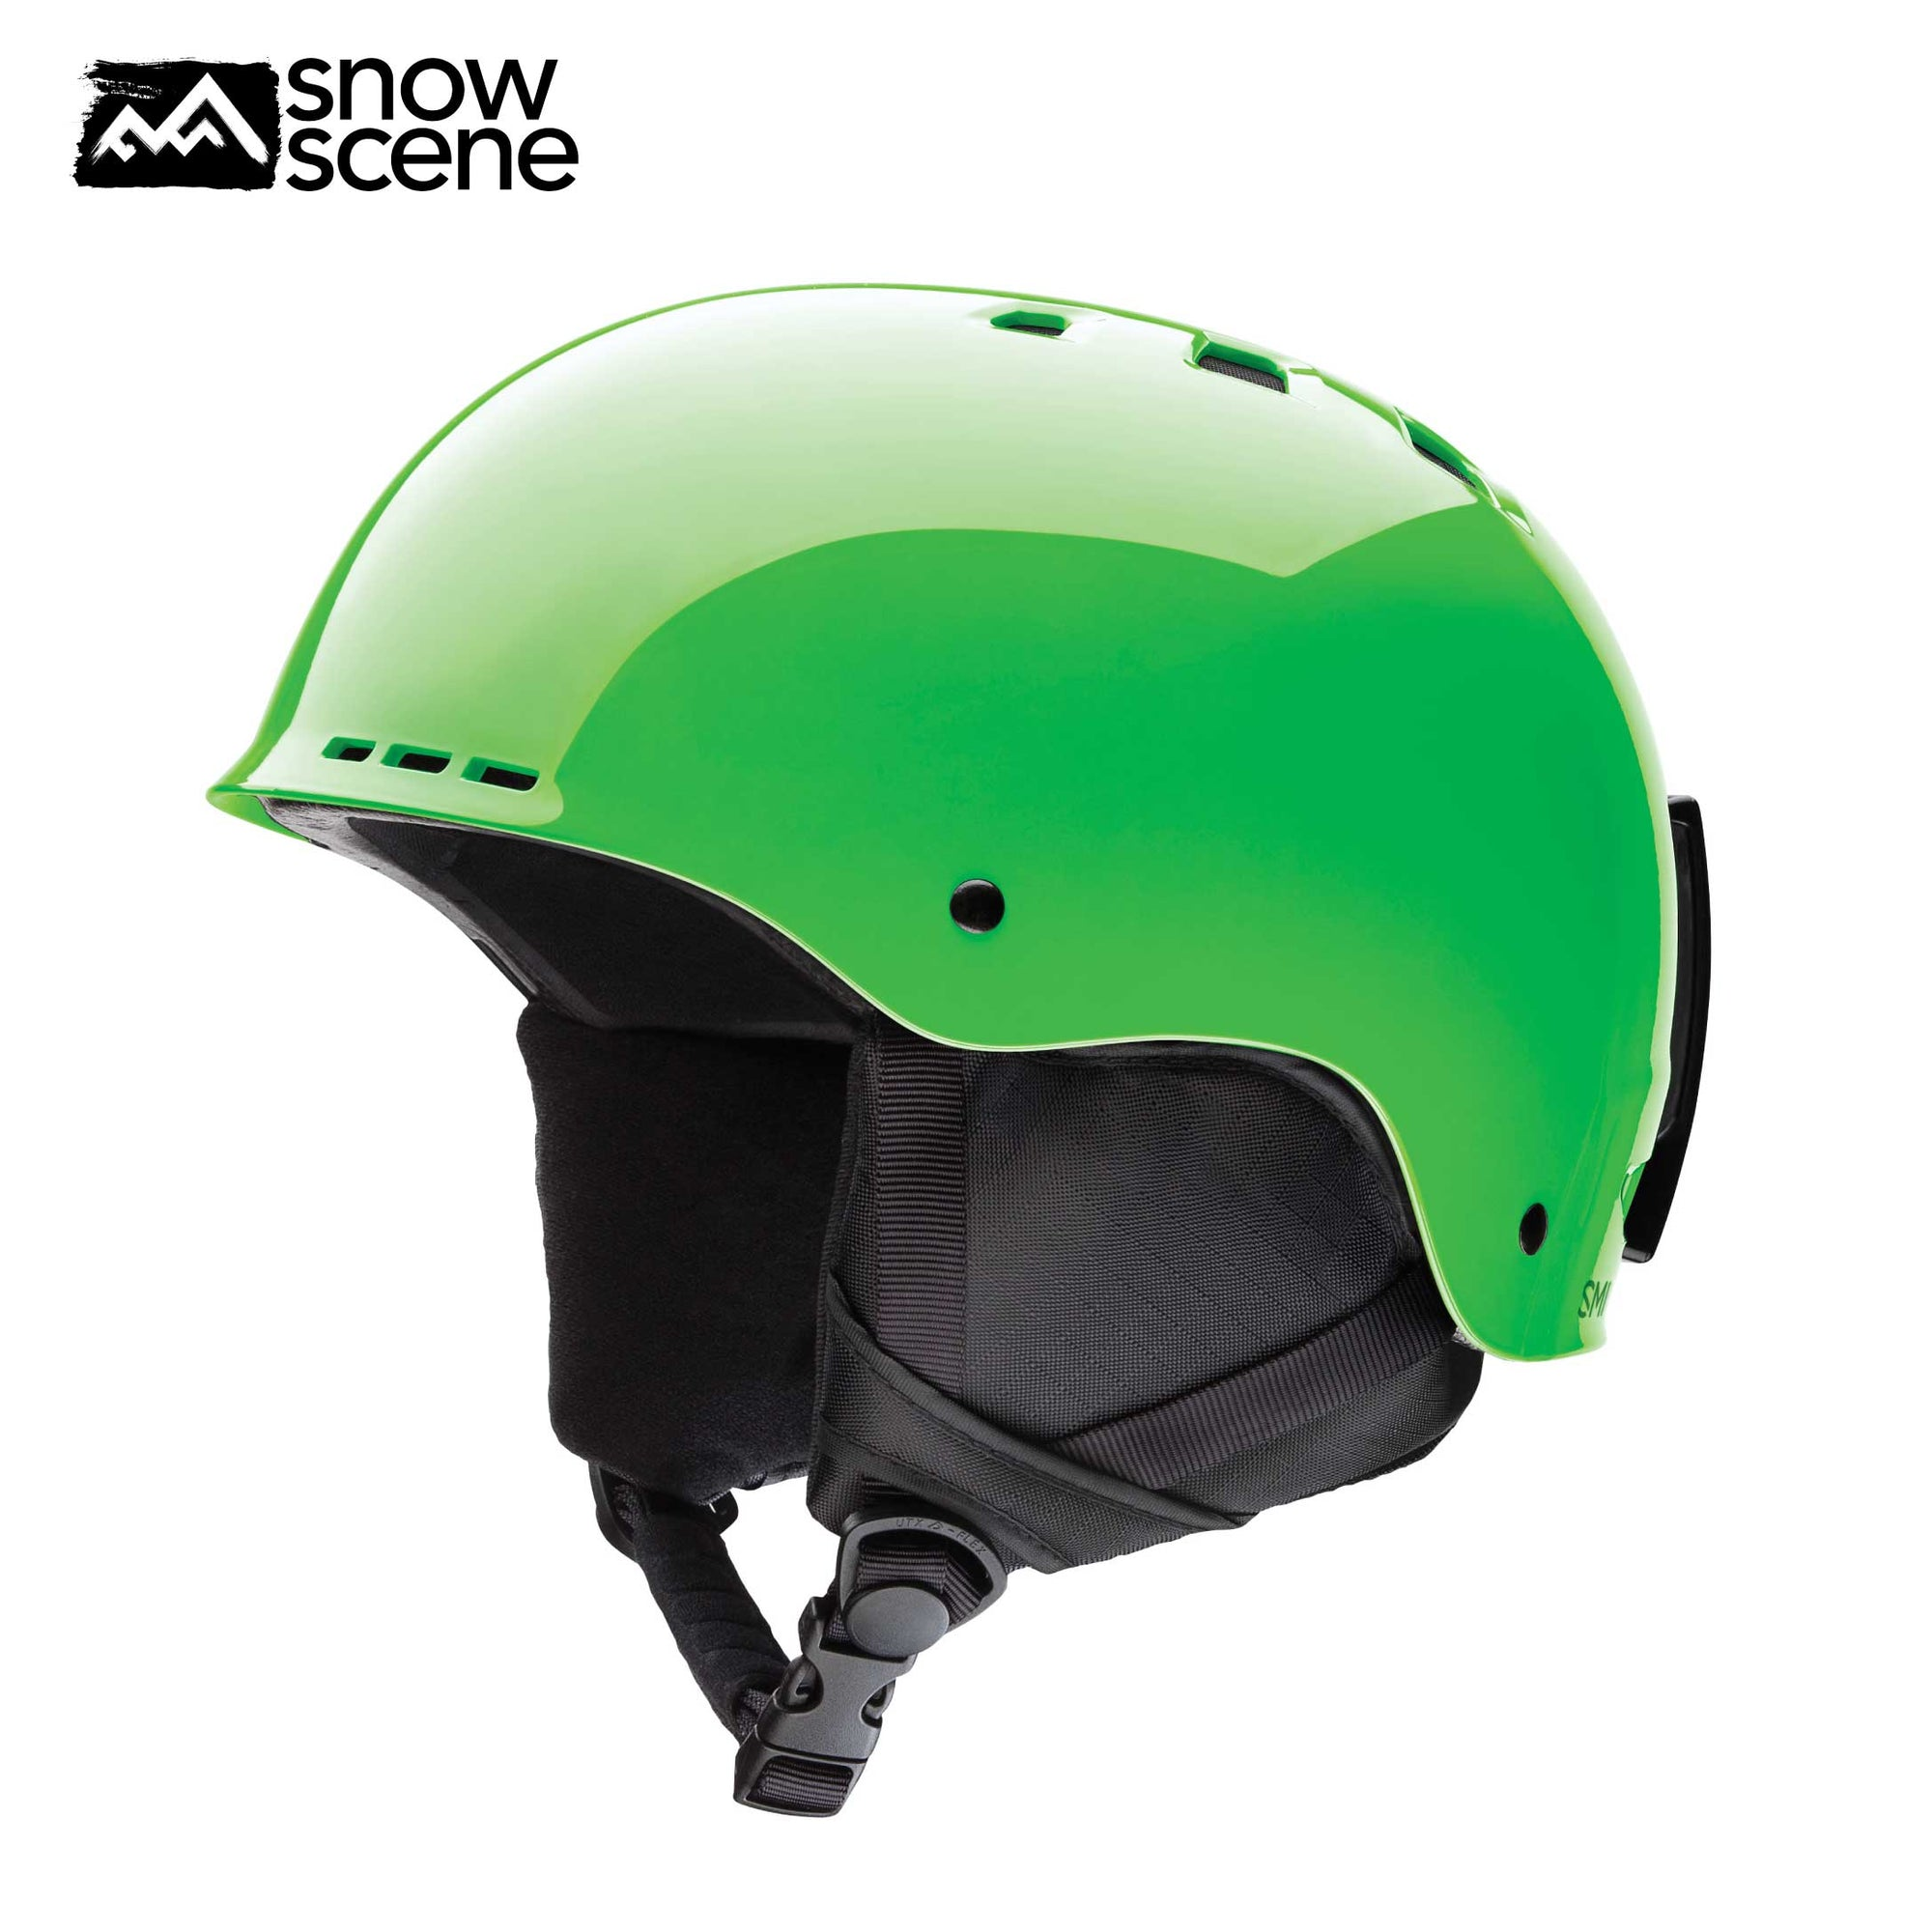 Smith Holt Junior Snow Helmet- Shop Skis and snow gear online nz - snowscene